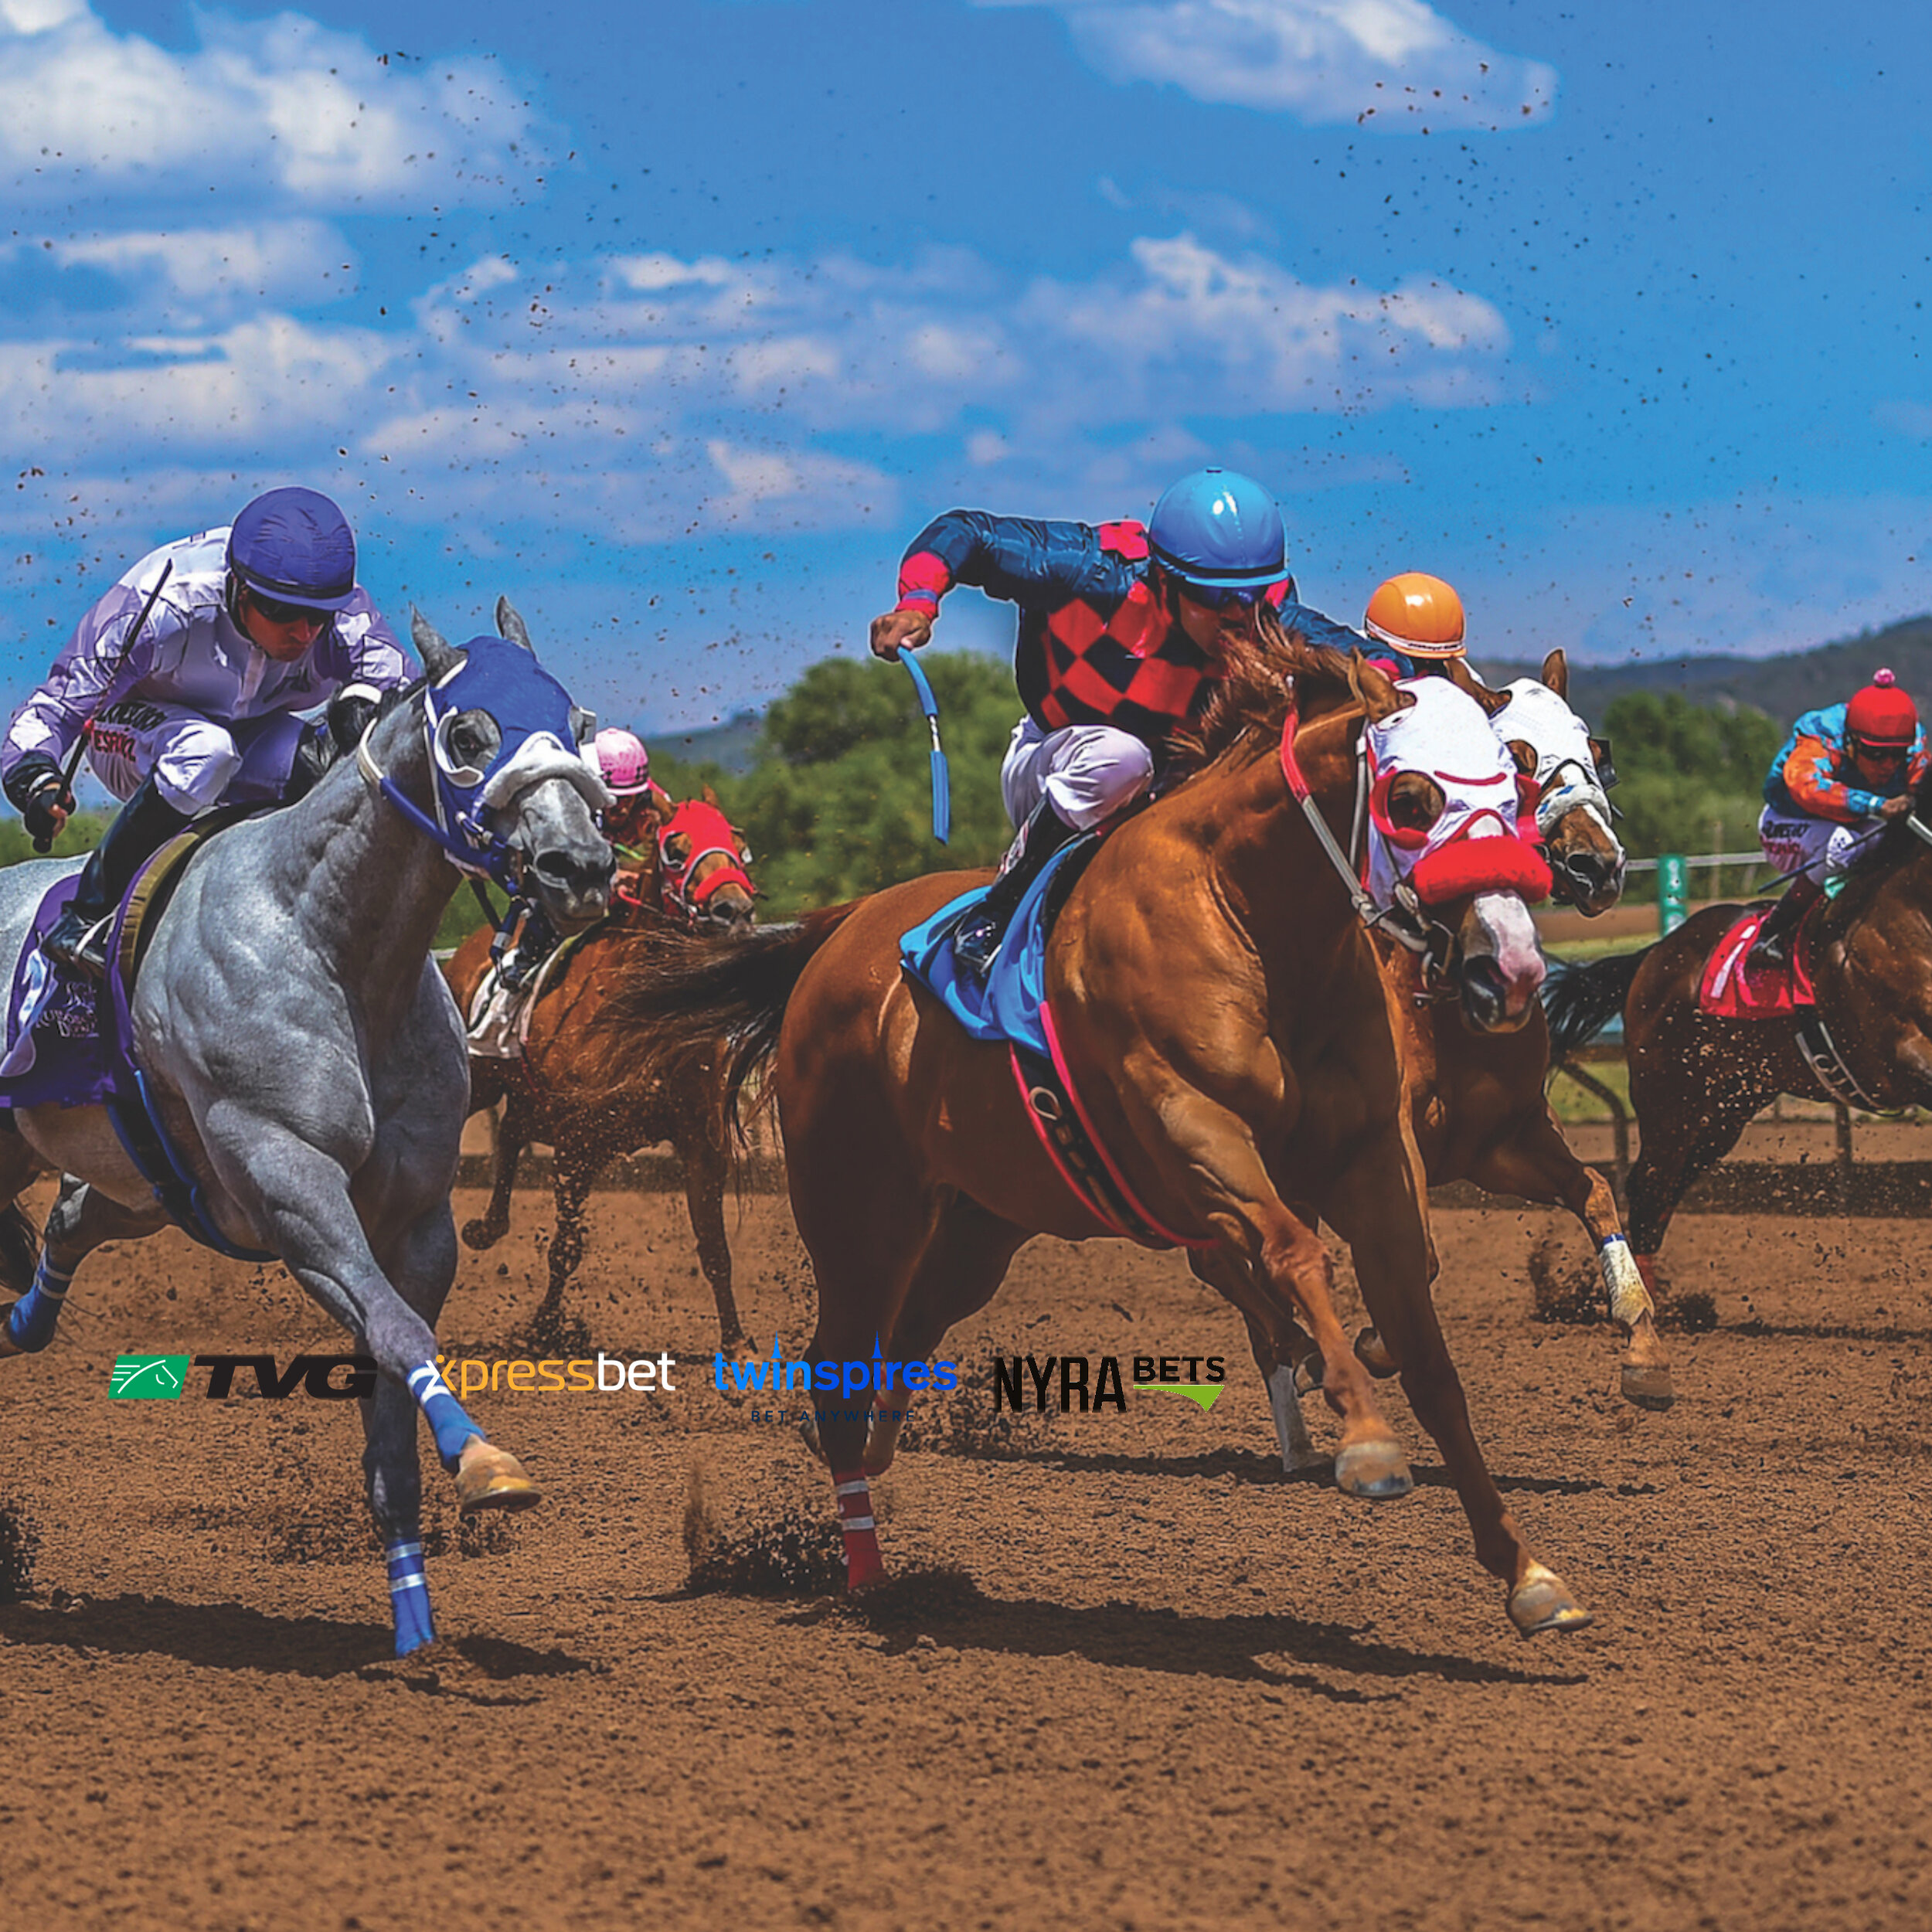 Live horse racing online betting eagle betting line